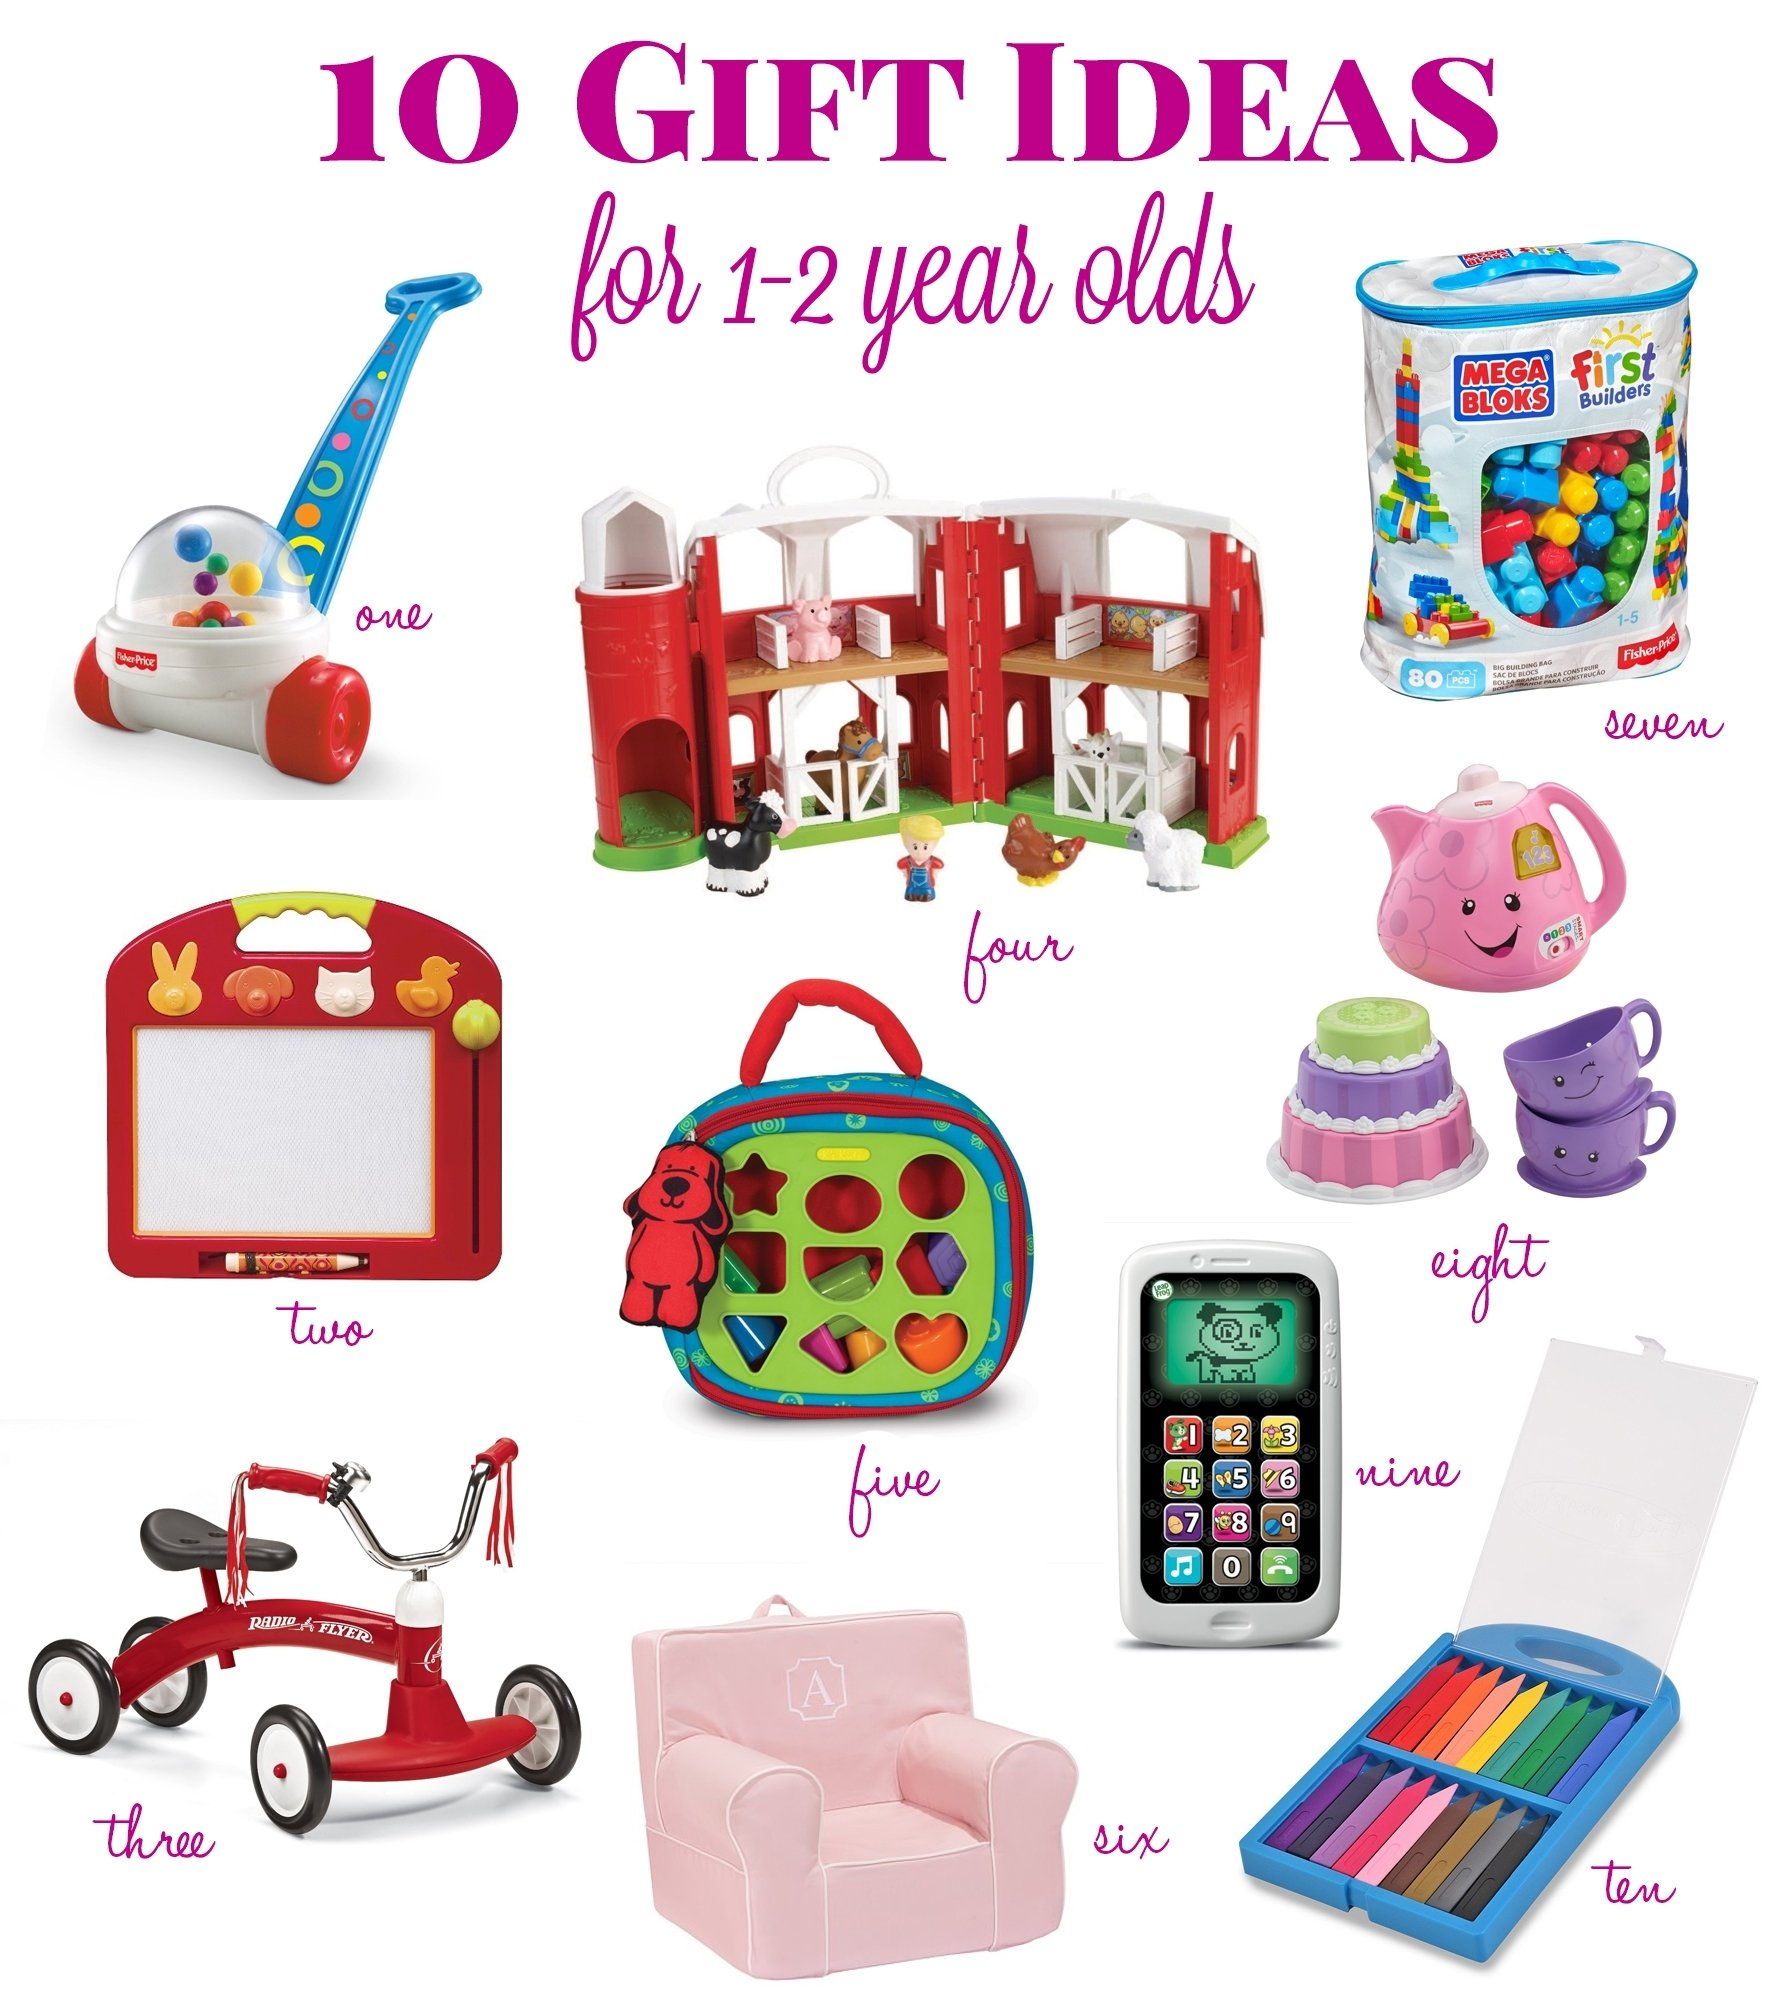 10 Cute 7 Year Old Birthday Gift Ideas gift ideas for a 1 year old lifes tidbits 9 2020